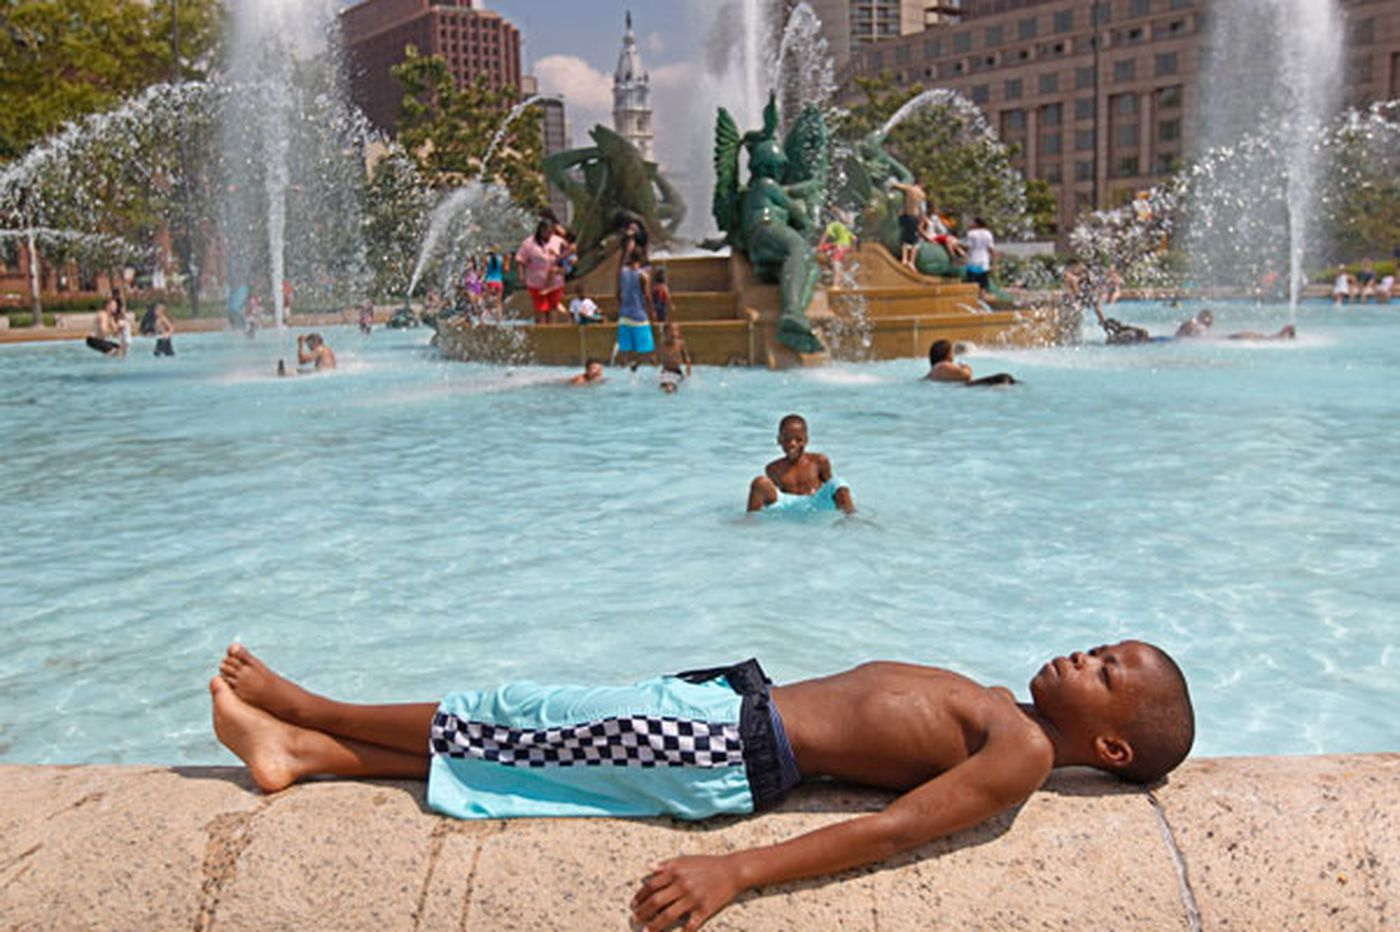 Philly could be as hot as Memphis by 2080 because of climate change, study says